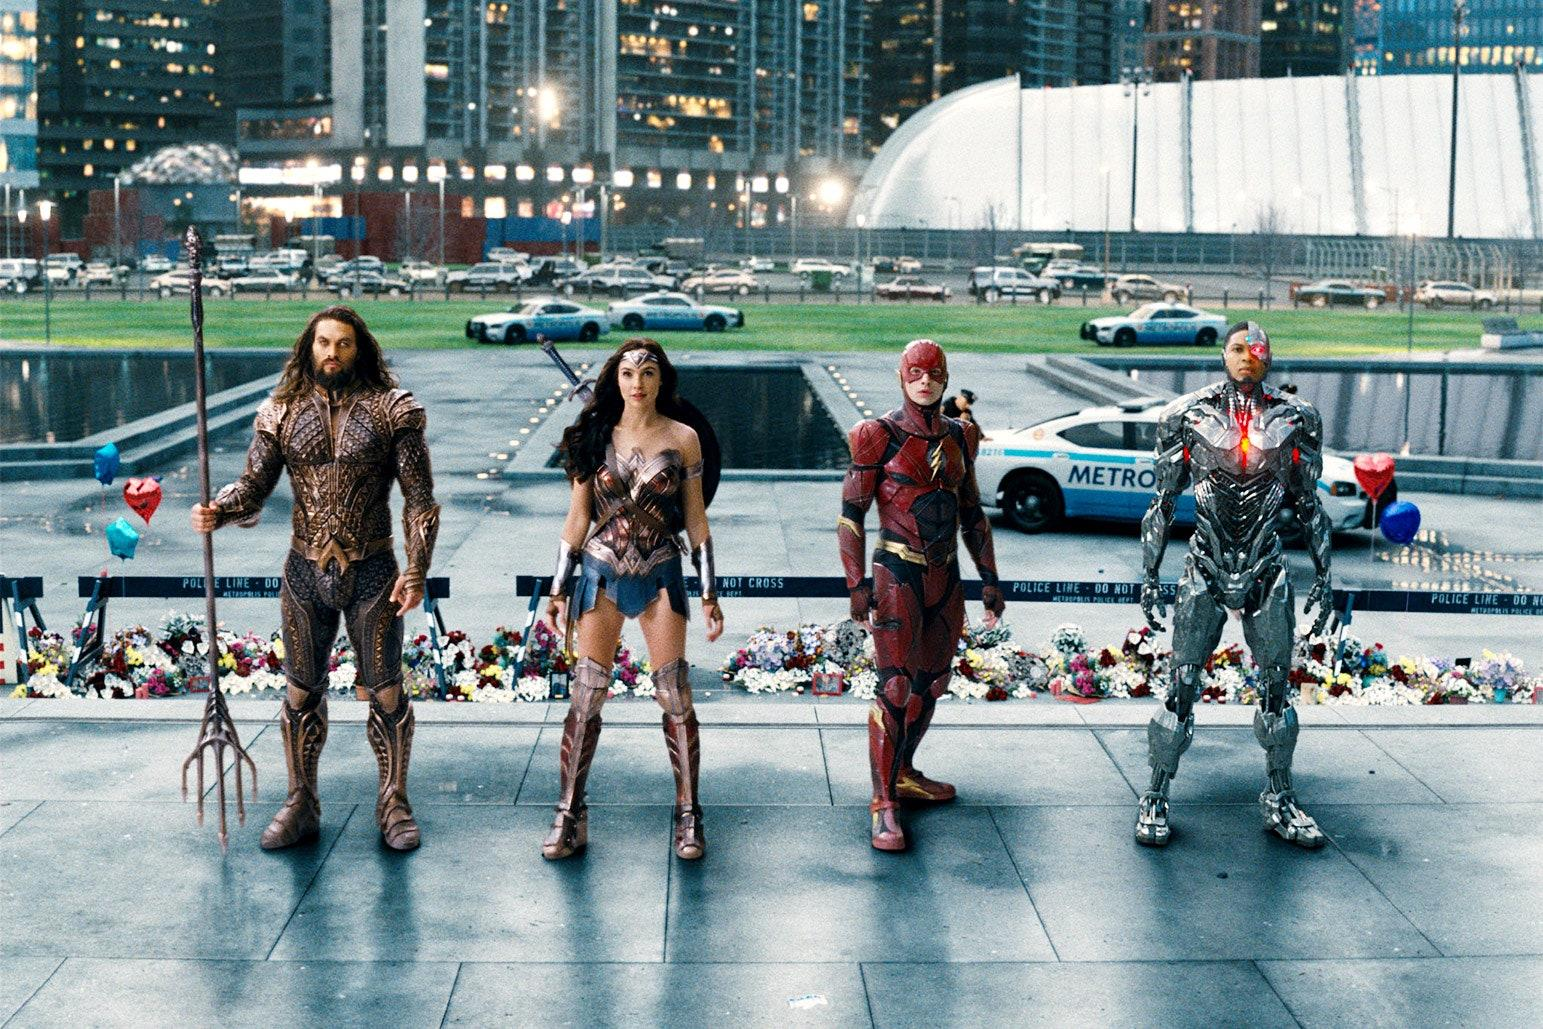 2. Zack Snyder's Justice League 03